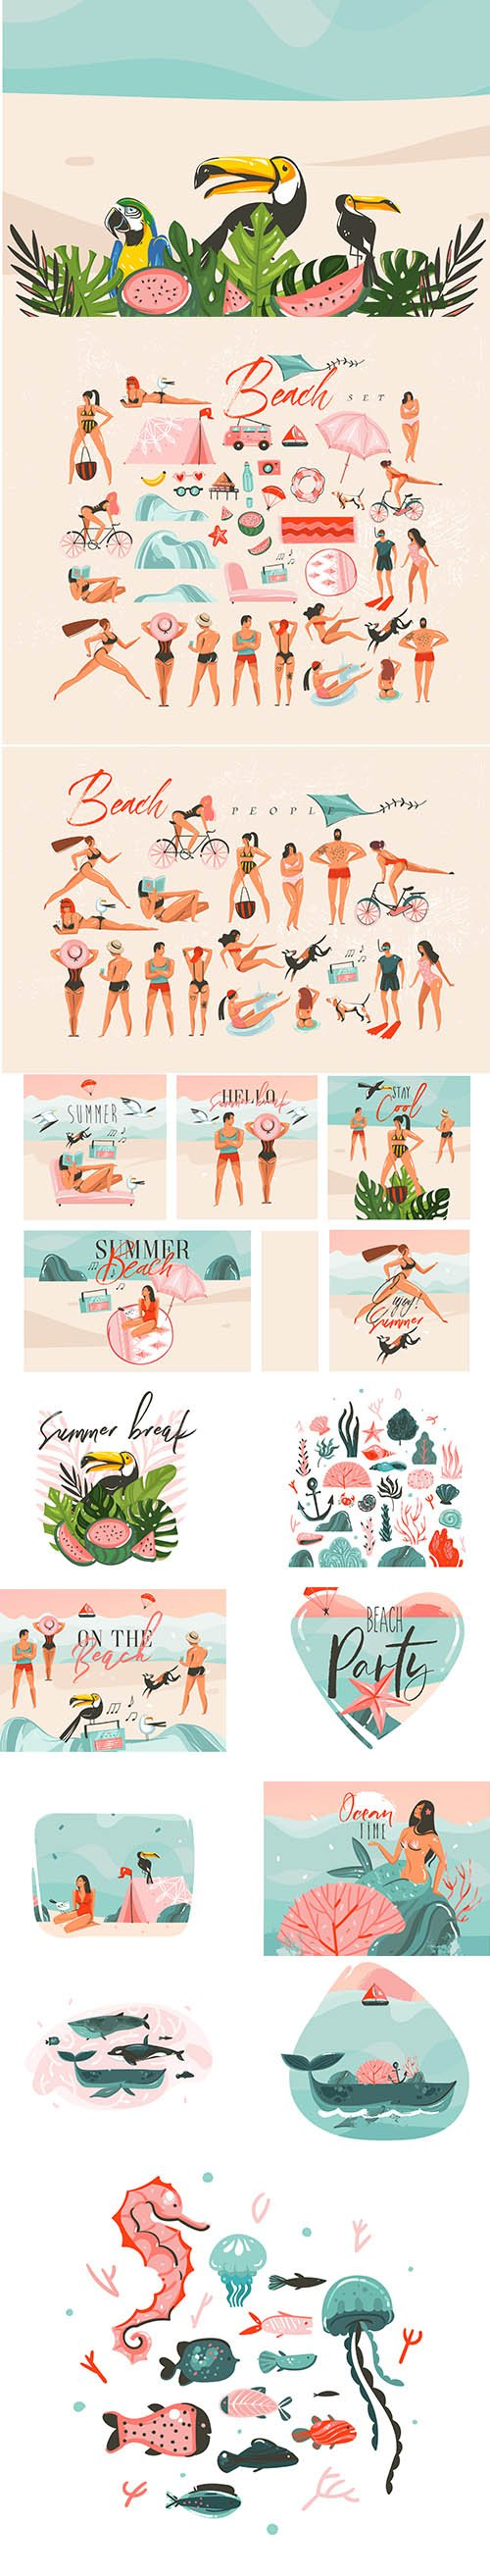 Hand-Drawn Abstract Graphic Cartoon Summer Time Flat Illustrations Collection Set Vol 2